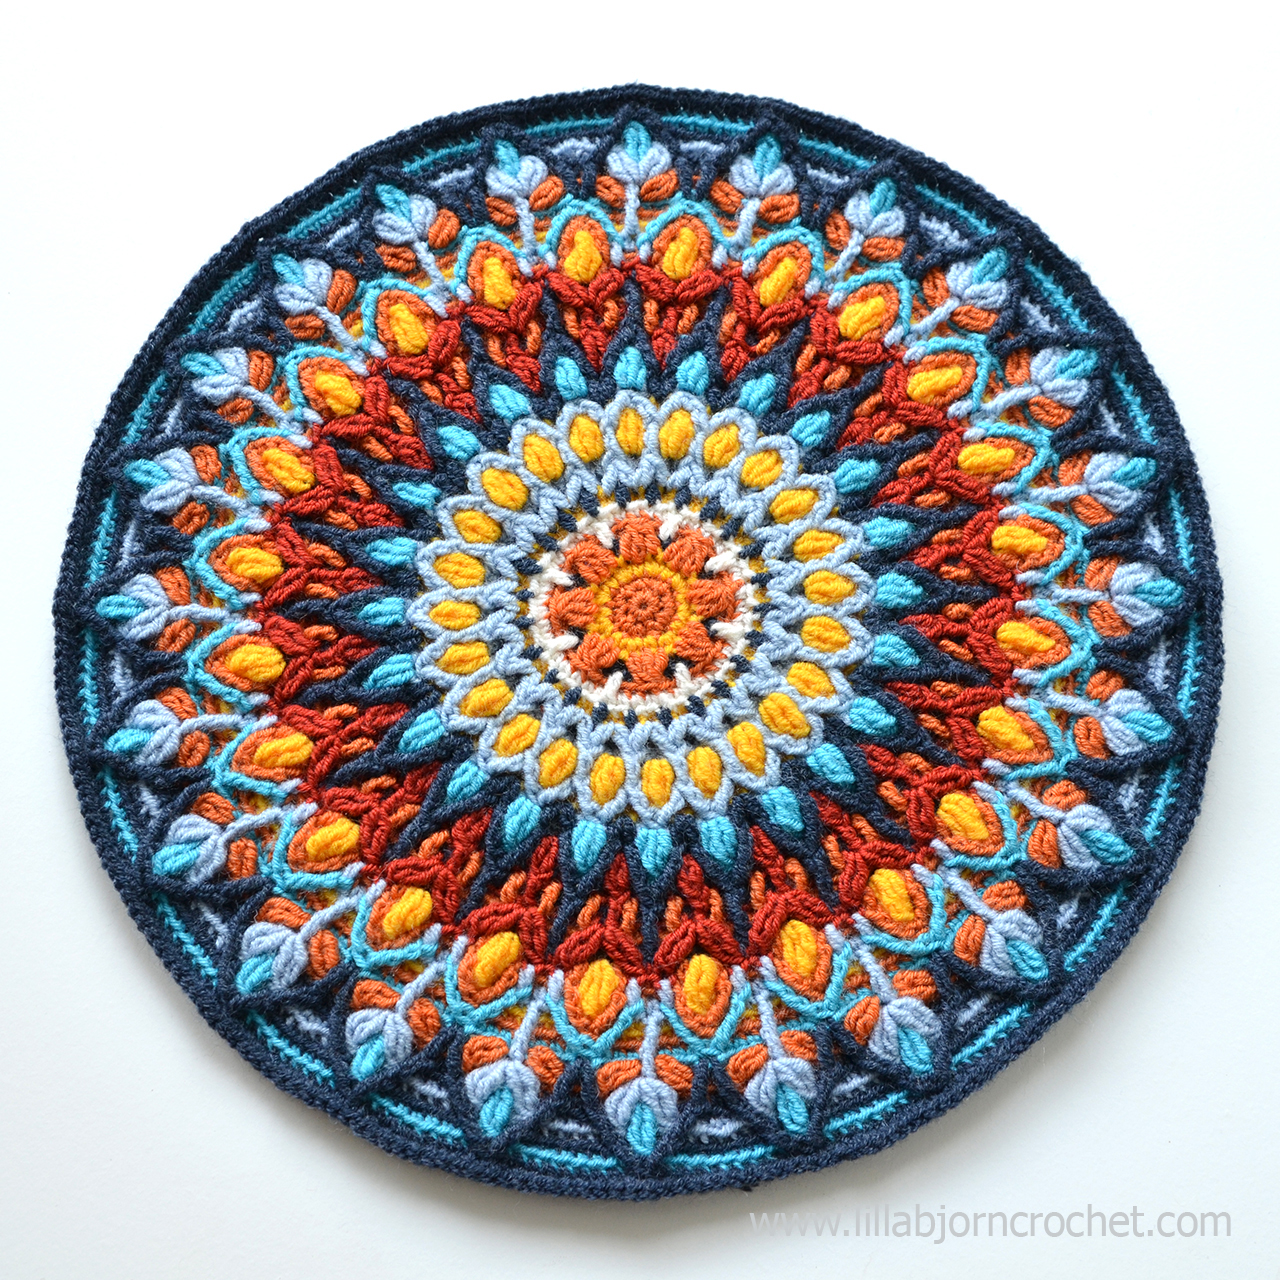 Spanish Mandala was inspired by ceramic handmade plates. Overlay crochet pattern by Lilla Bjorn Crochet